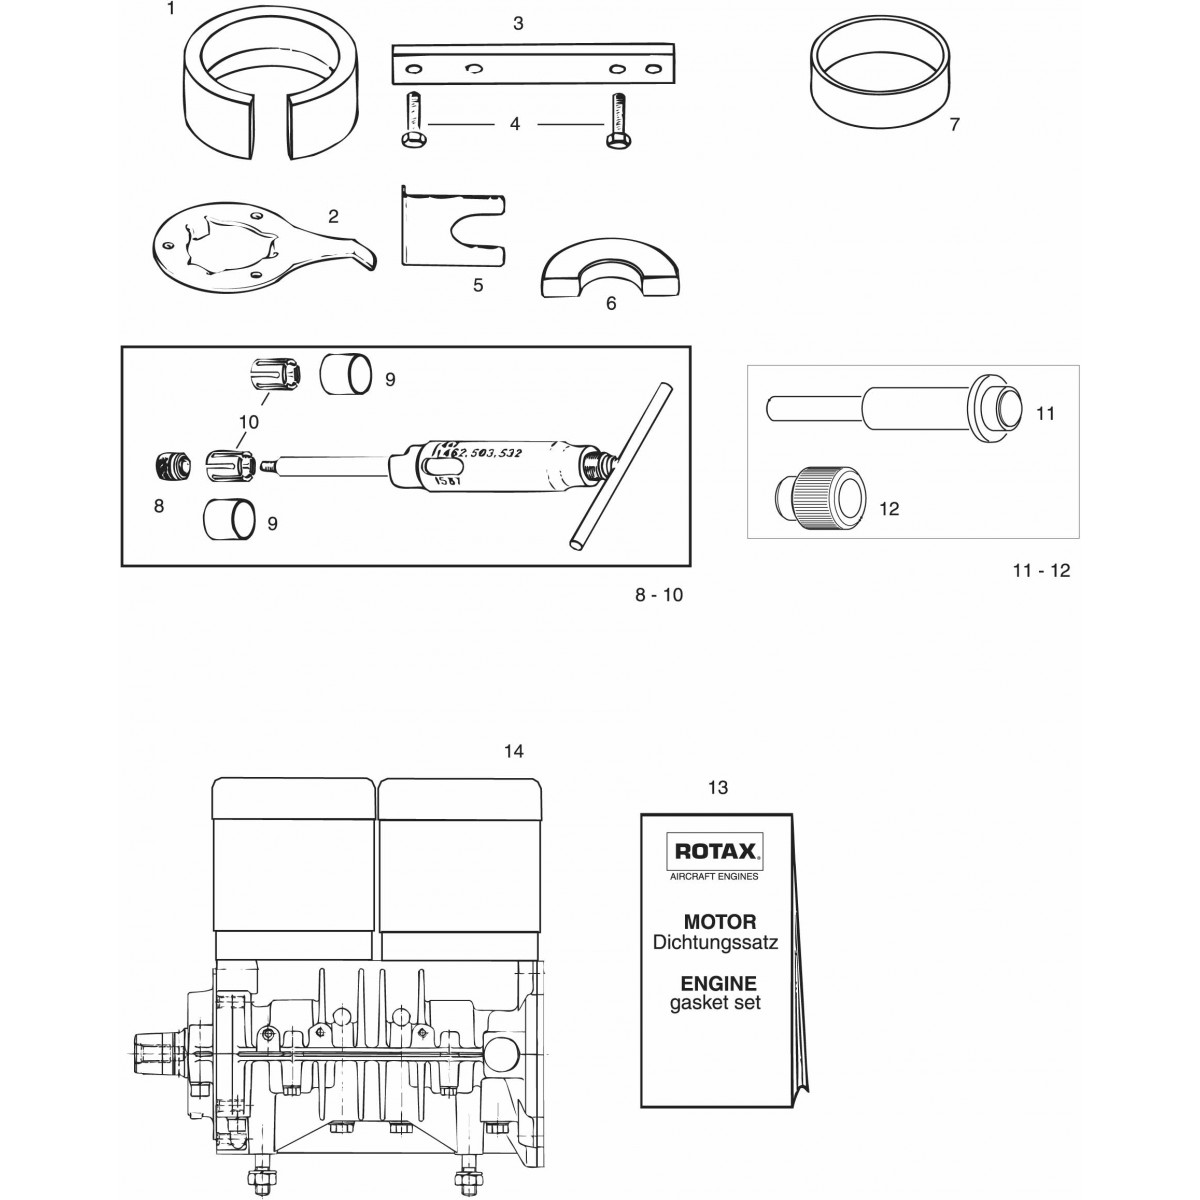 hight resolution of 503 engine diagram